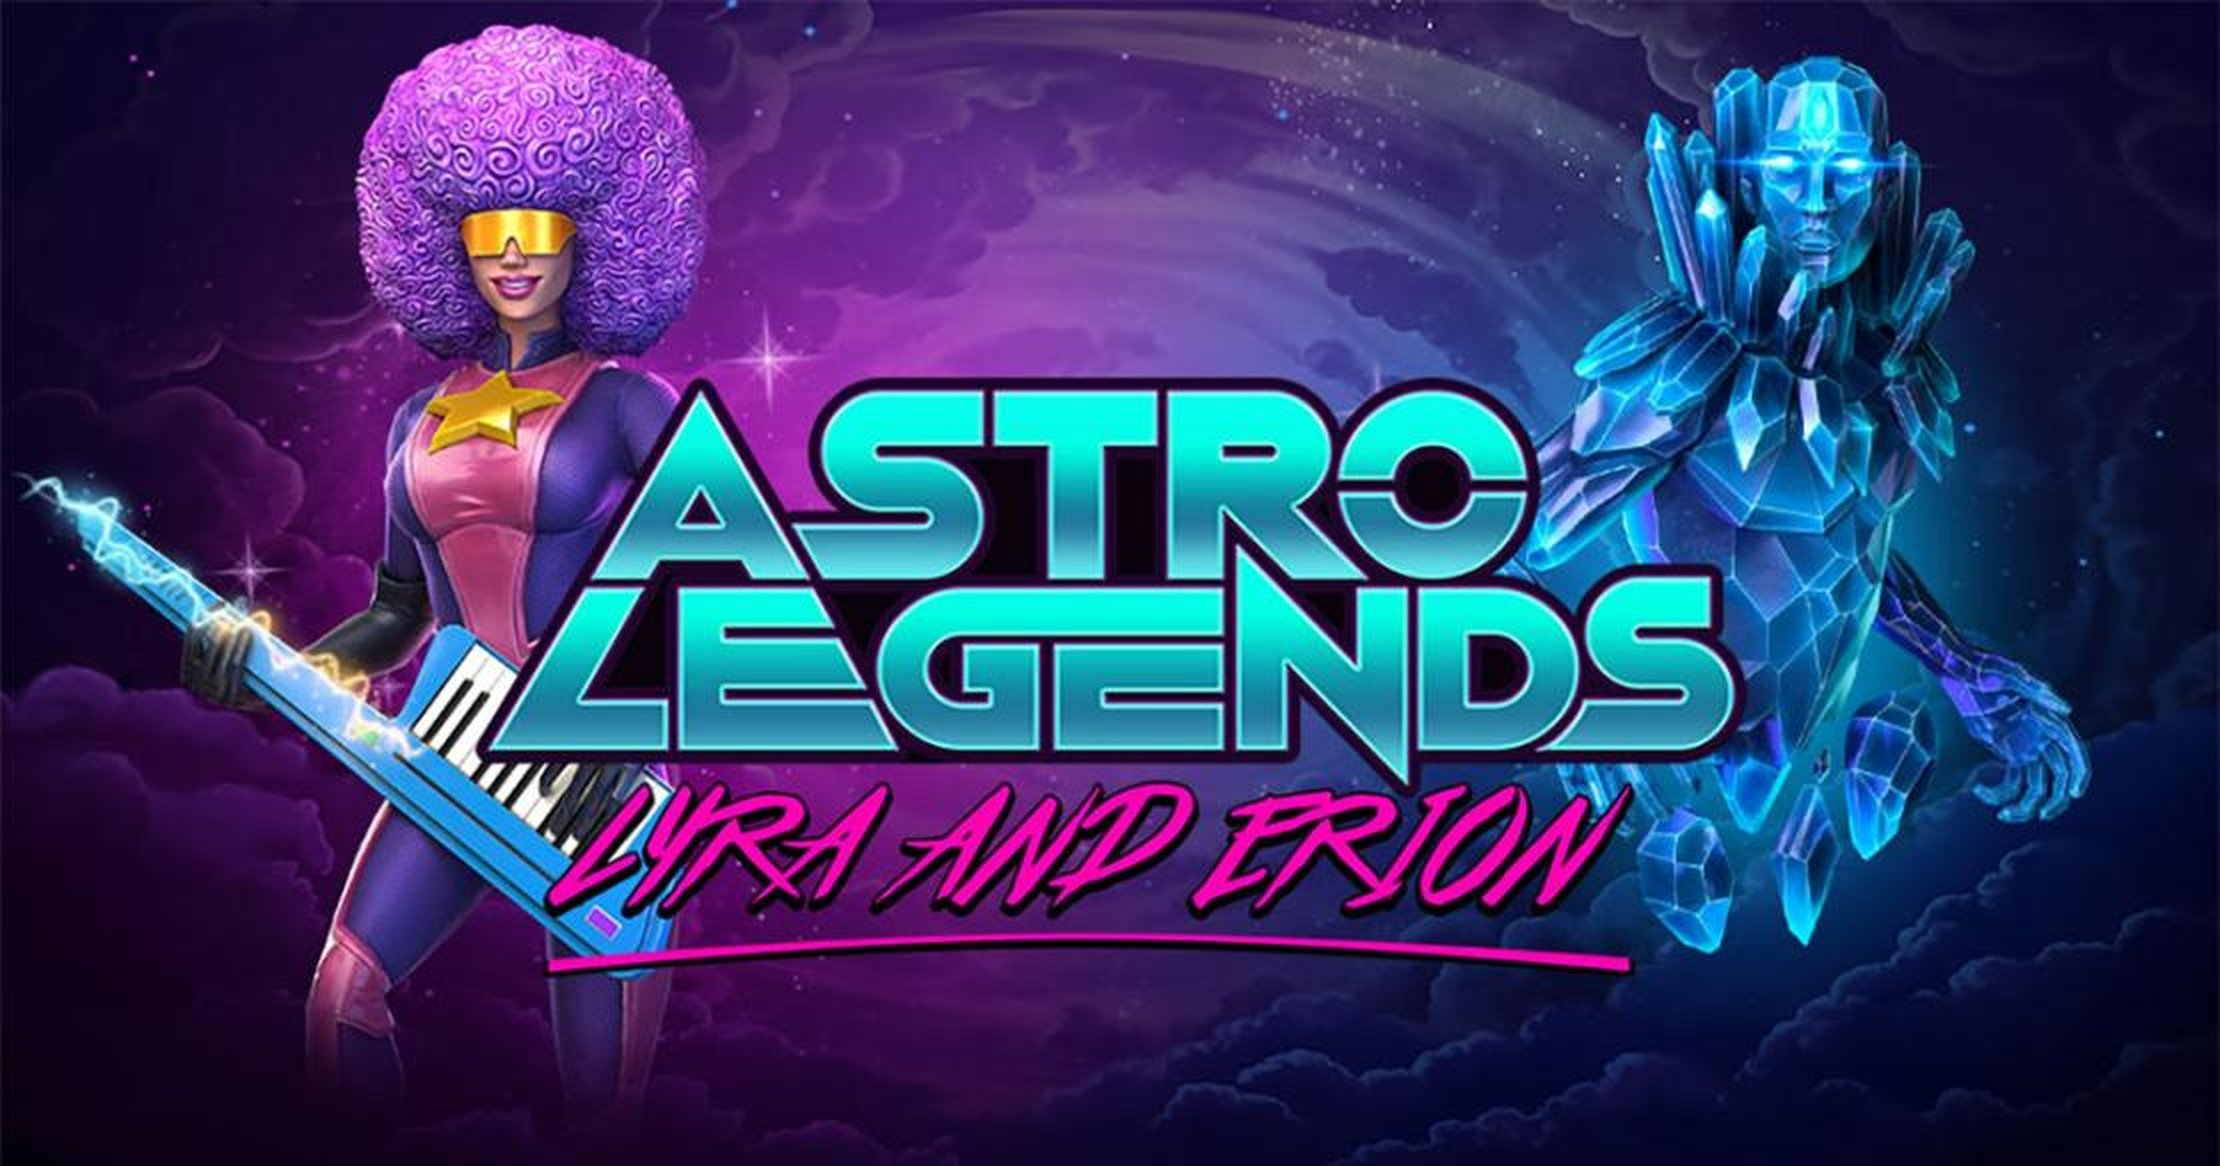 Astro Legends: Lyra and Erion Online Slot Demo Game by Foxium